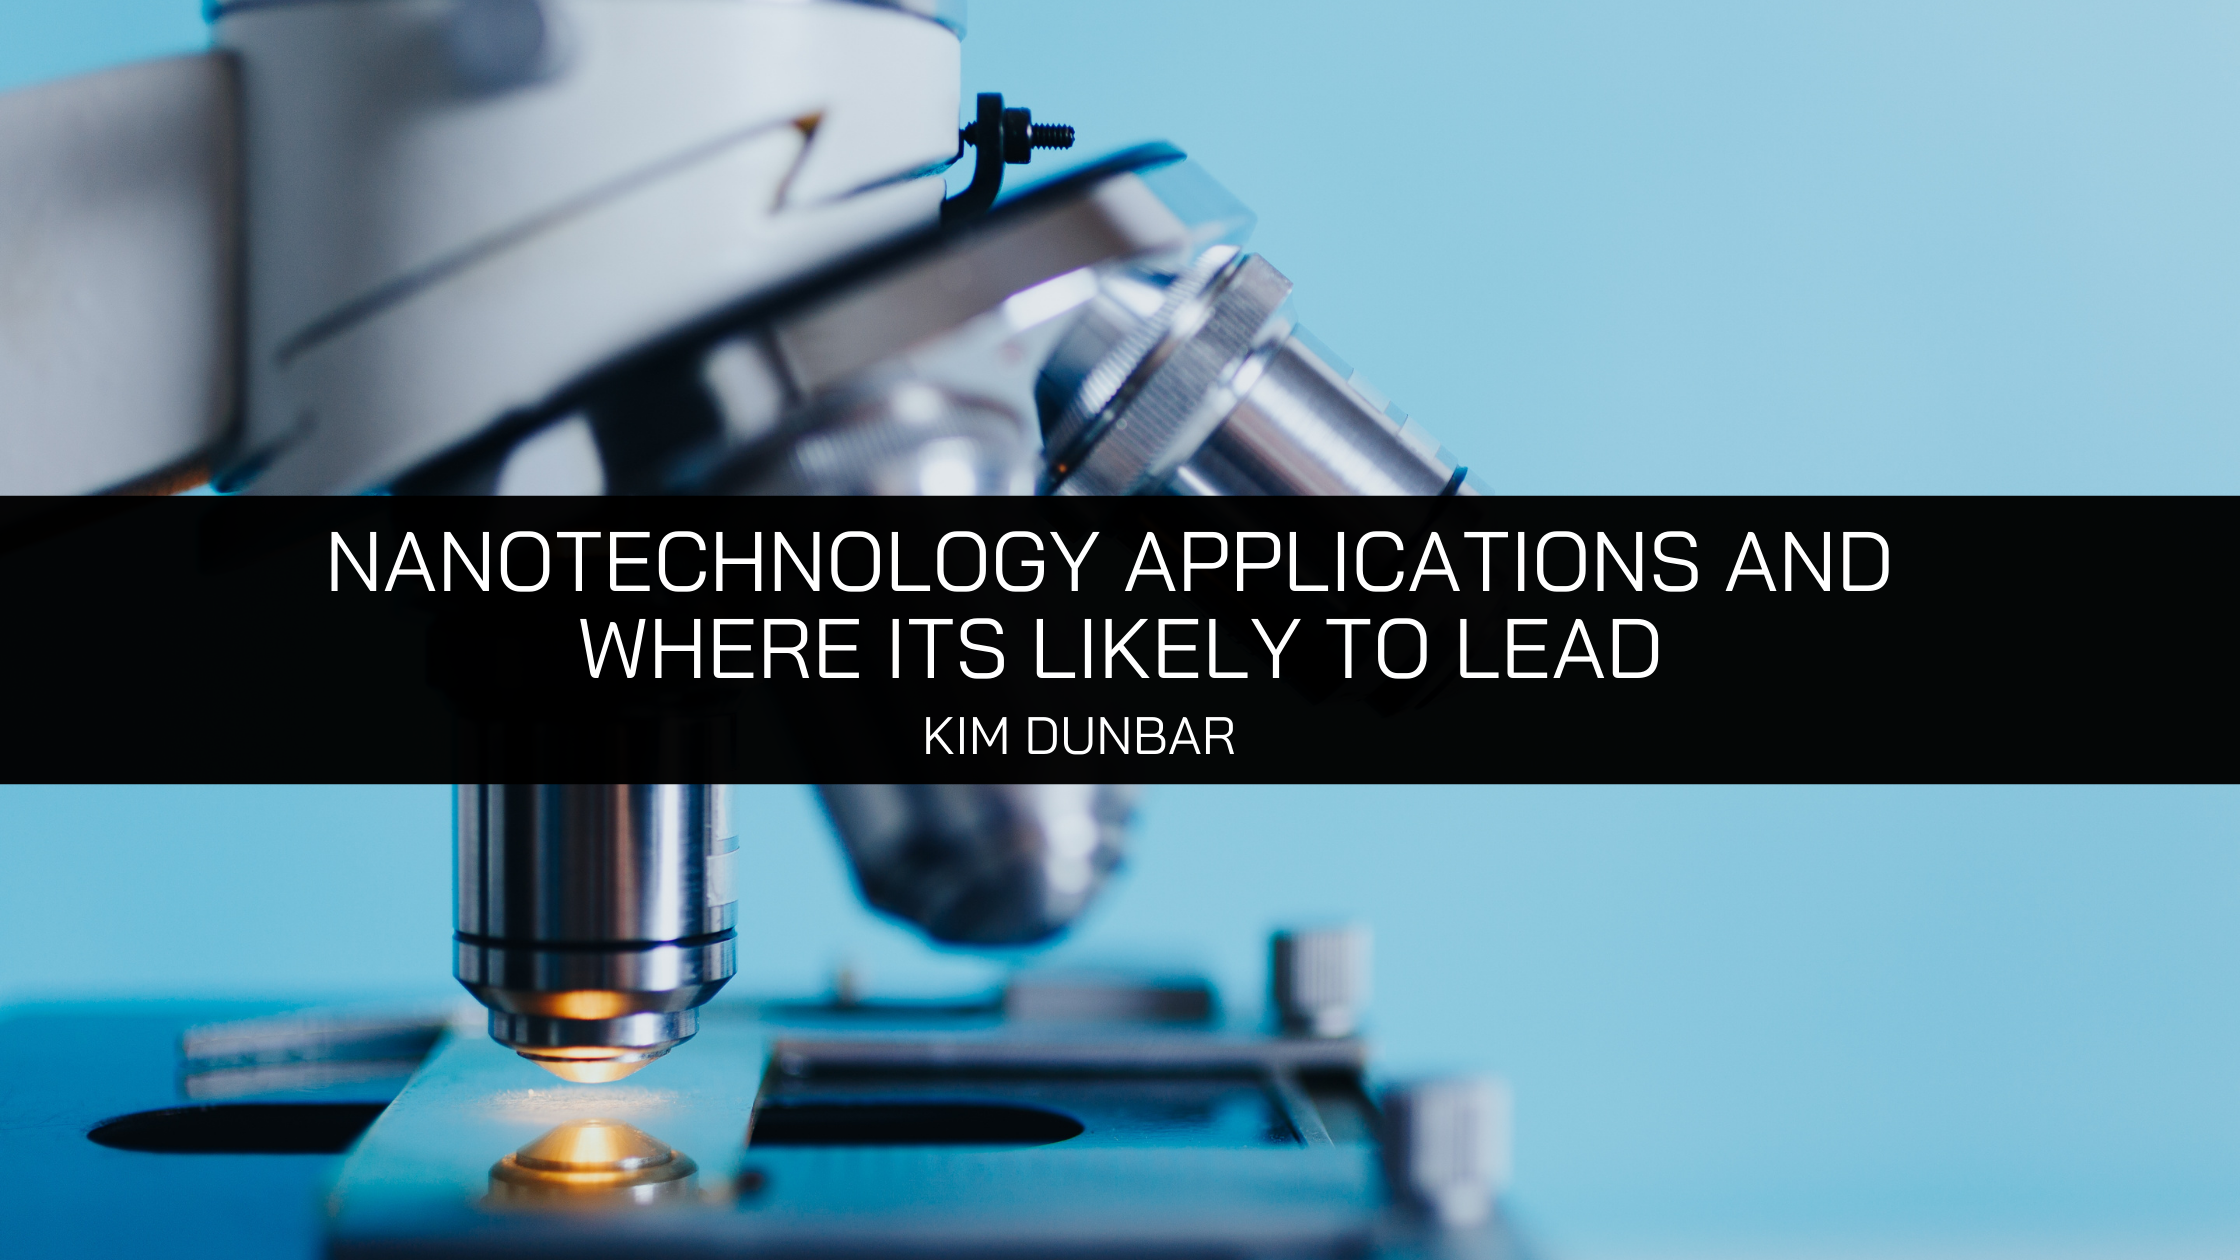 Kim Dunbar Explains Nanotechnology Applications and Where Its Likely to Lead